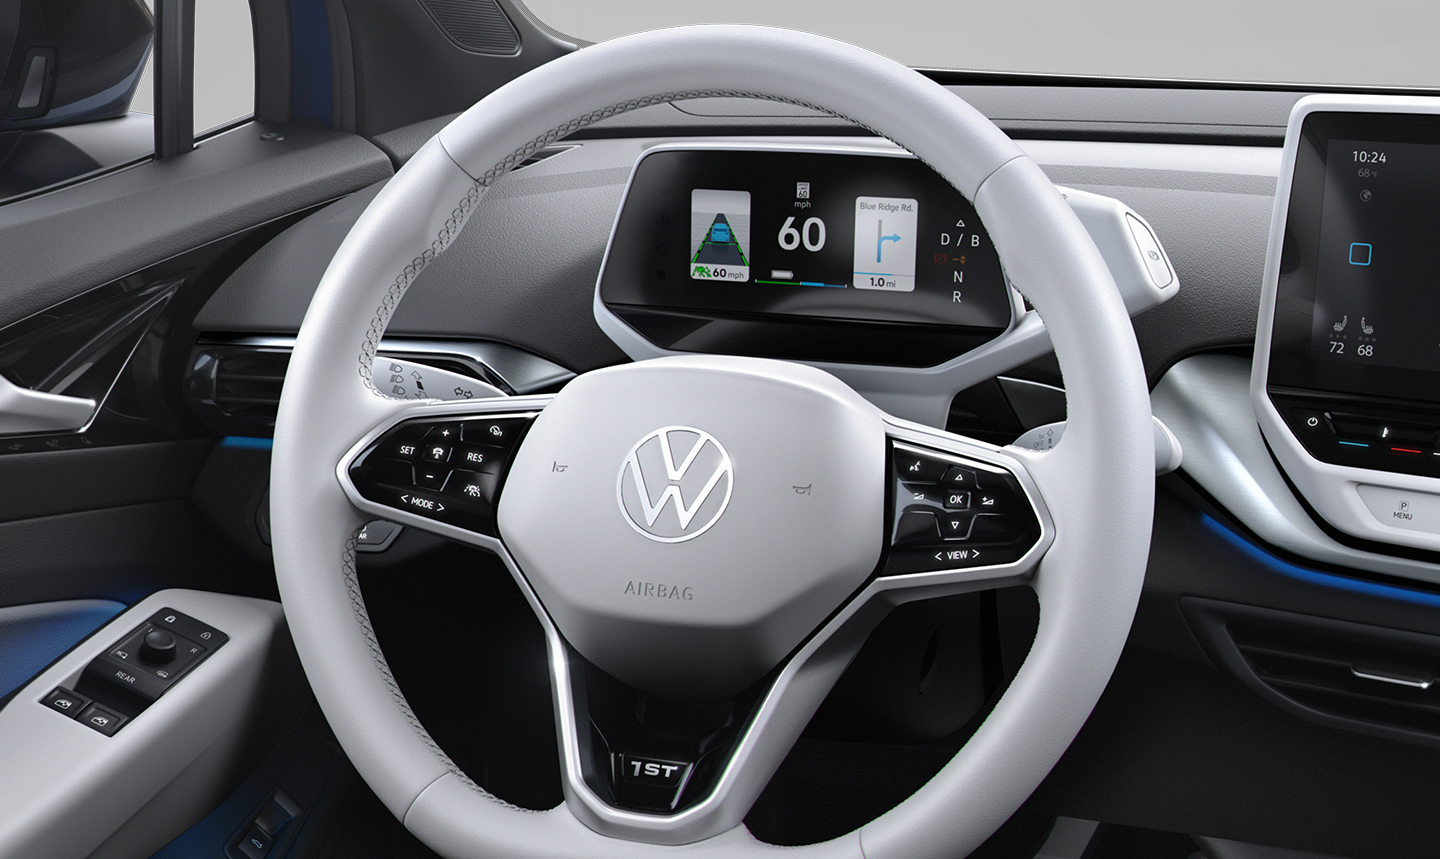 Driver Information and Steering Wheel